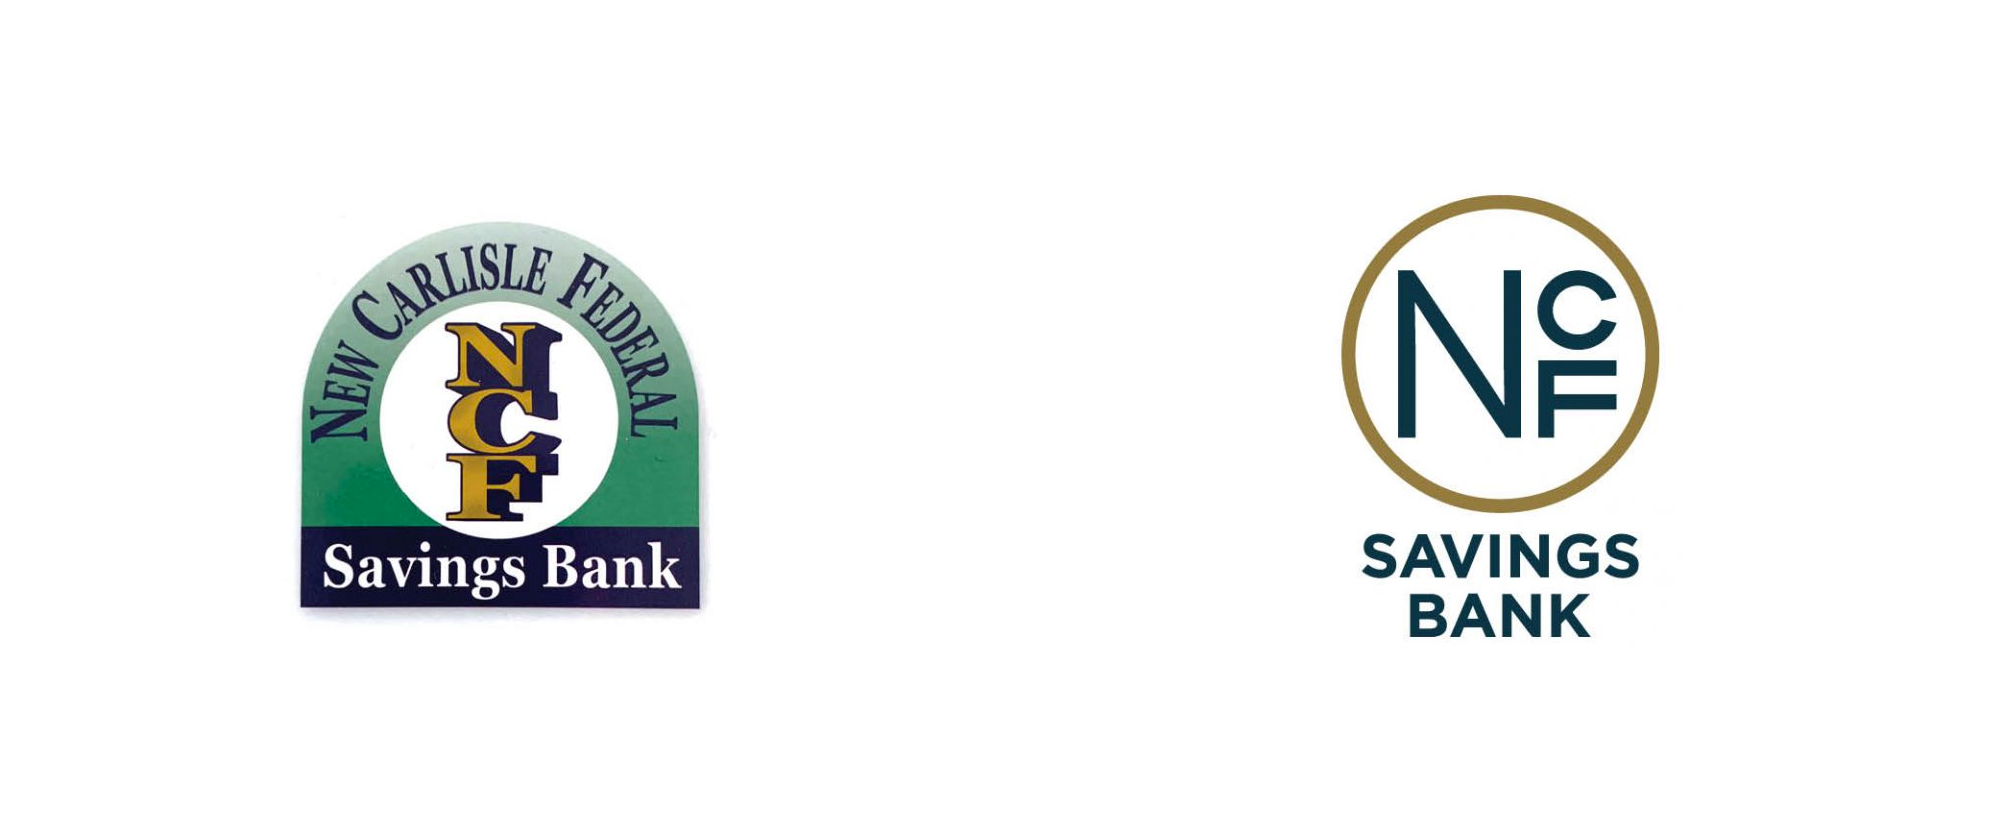 New Logo and Identity for New Carlisle Federal Savings Bank byHucklebuck Design Studio